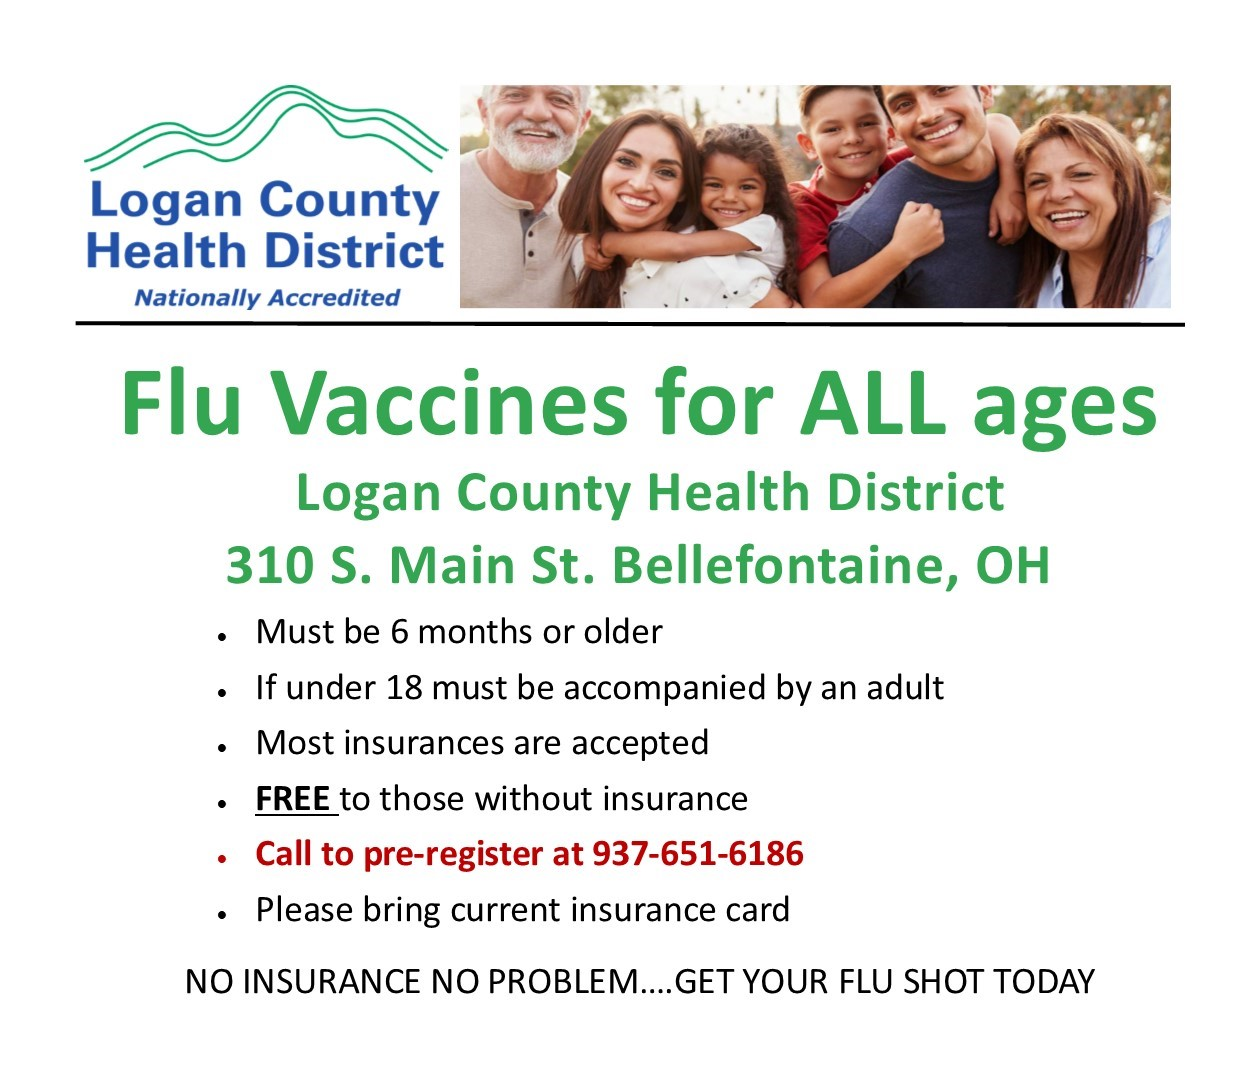 Flu vaccine for all ages